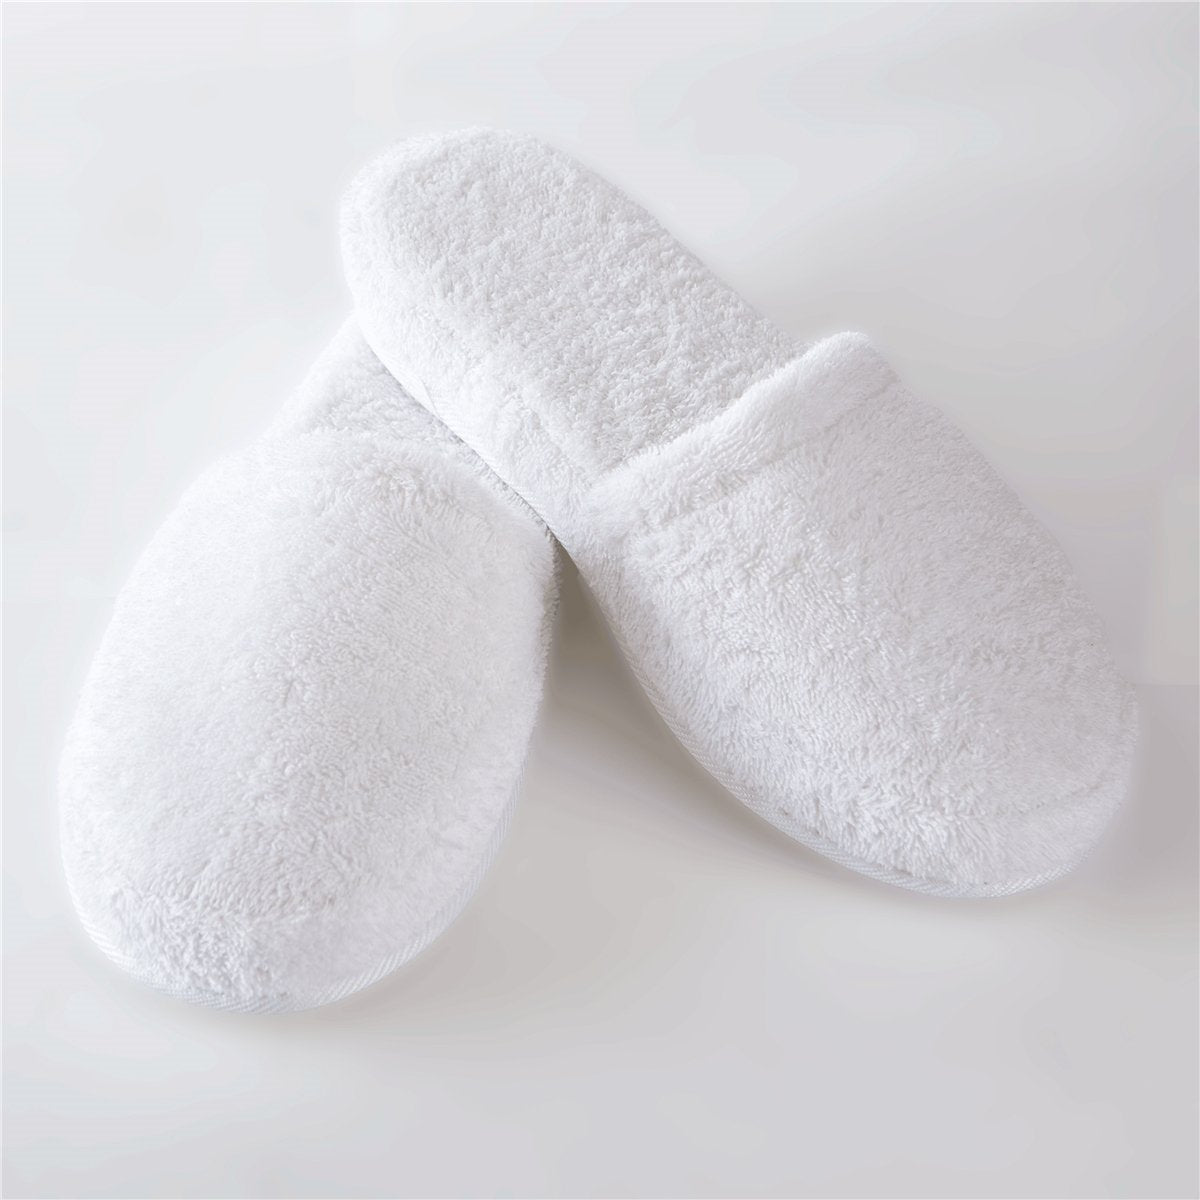 Turkish Terry Slippers, Medium and Large, White, Navy, Pink, Lavender, Steel, Black, Charcoal - Soft & Plush Comfortable Lounging